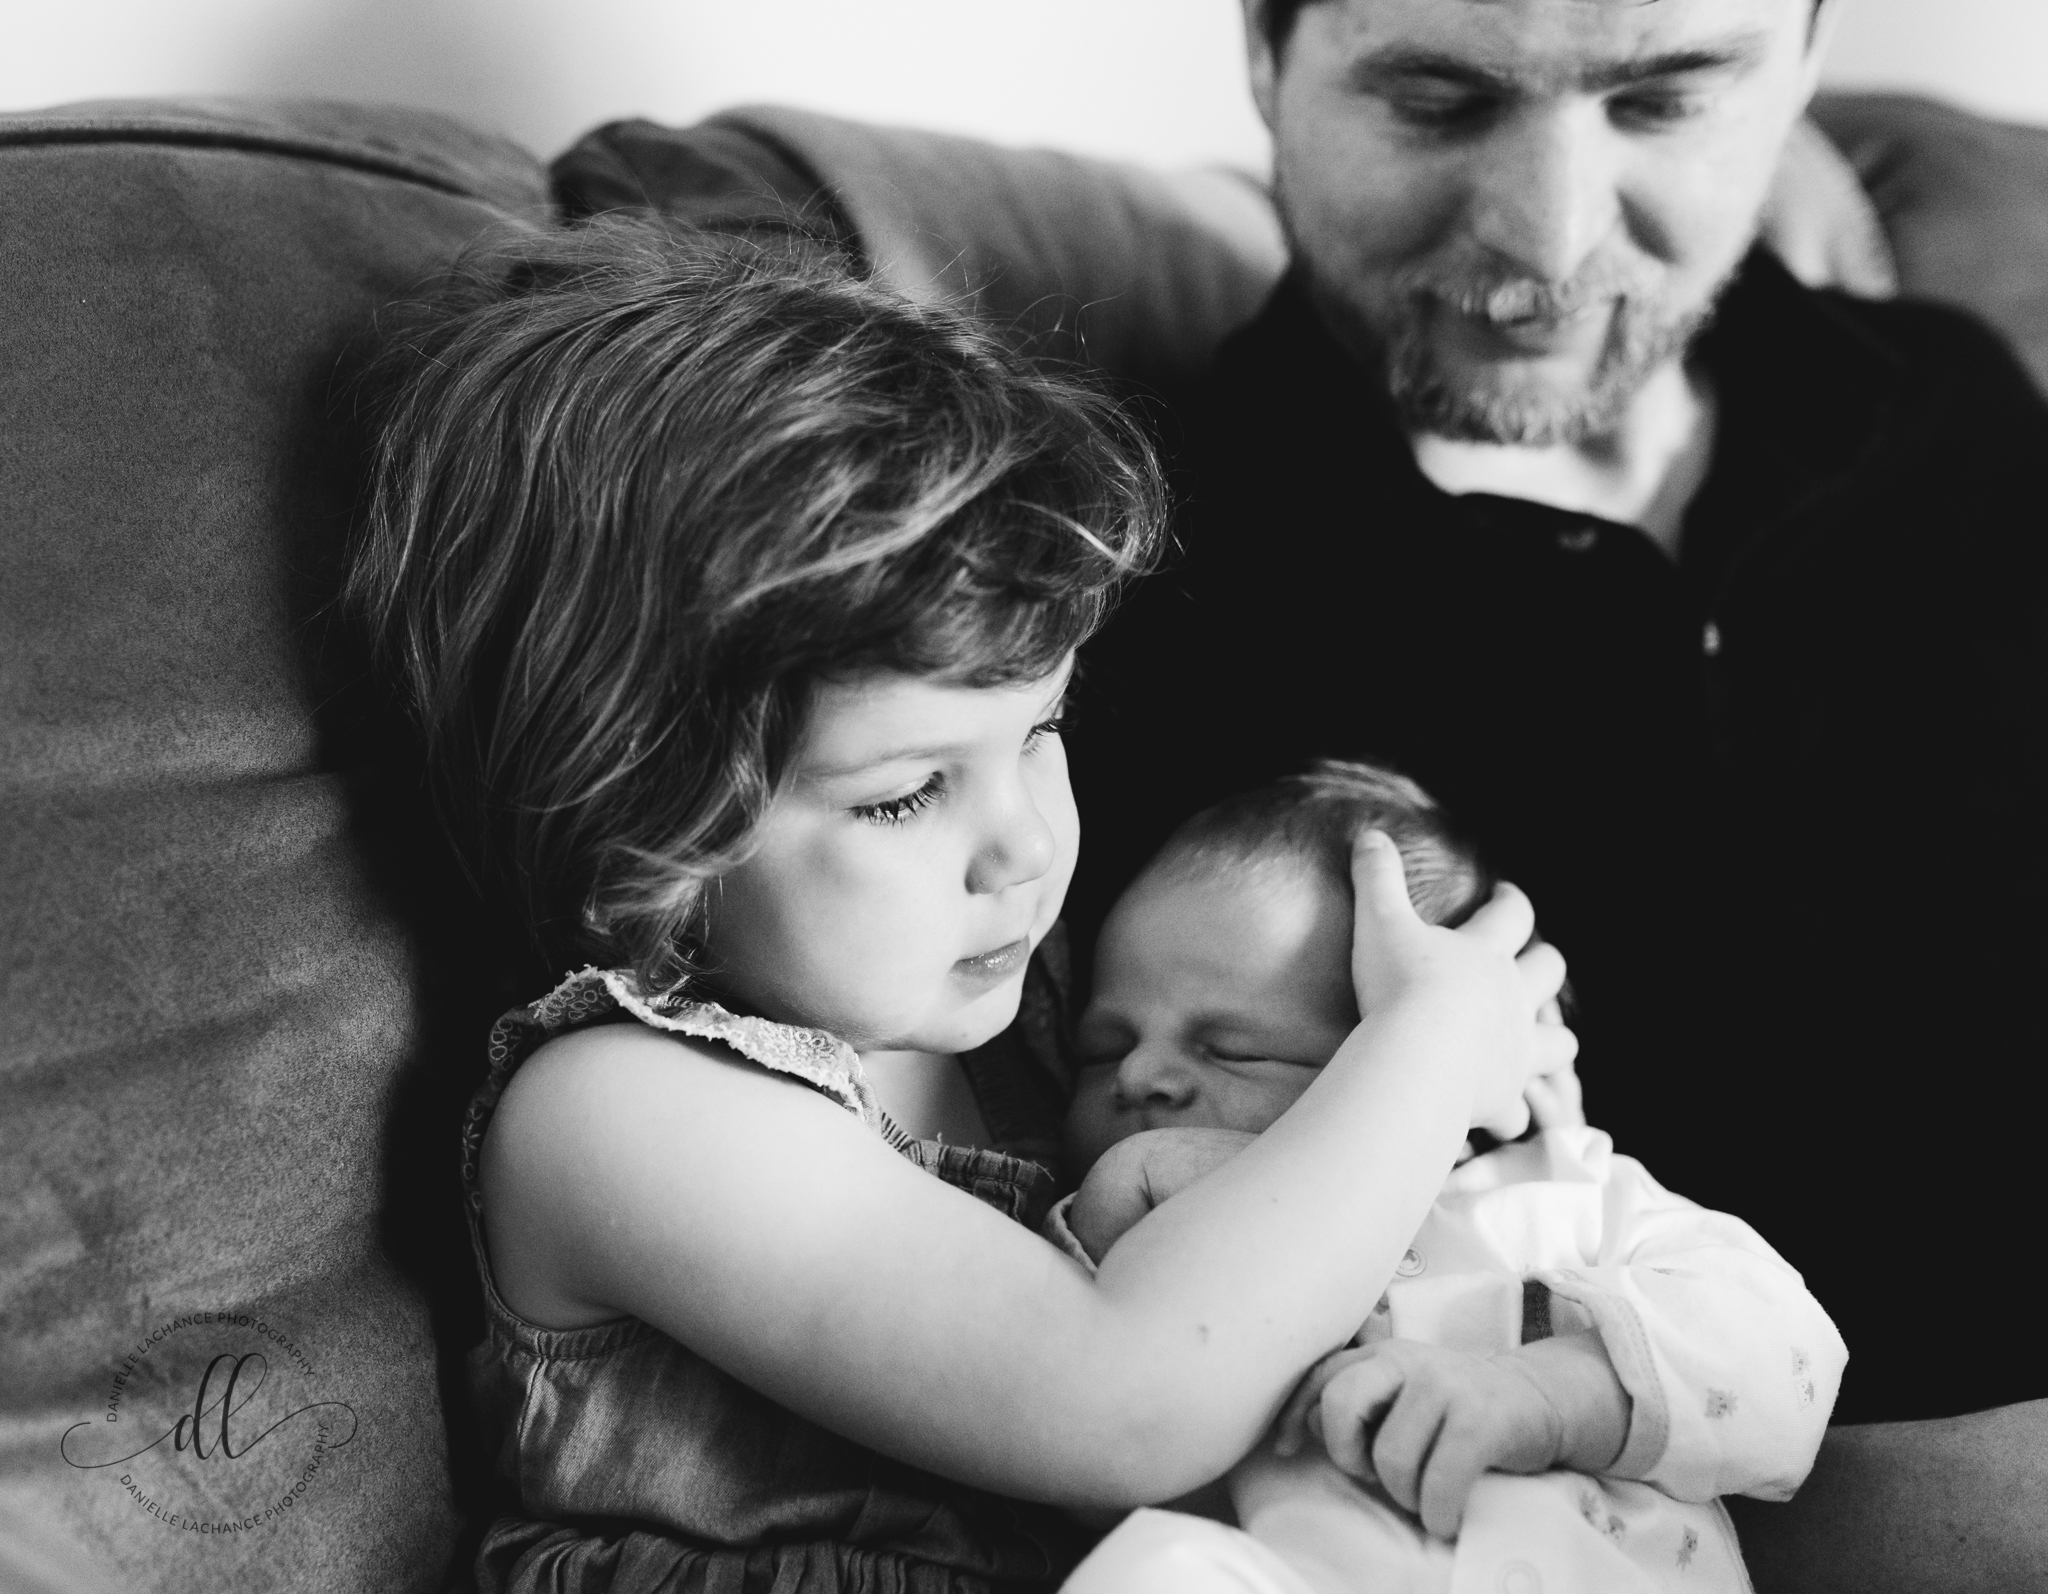 maine-family-newborn-in-home-lifestyle-natural-photographer-siblings-big-sister-holding-baby.jpg